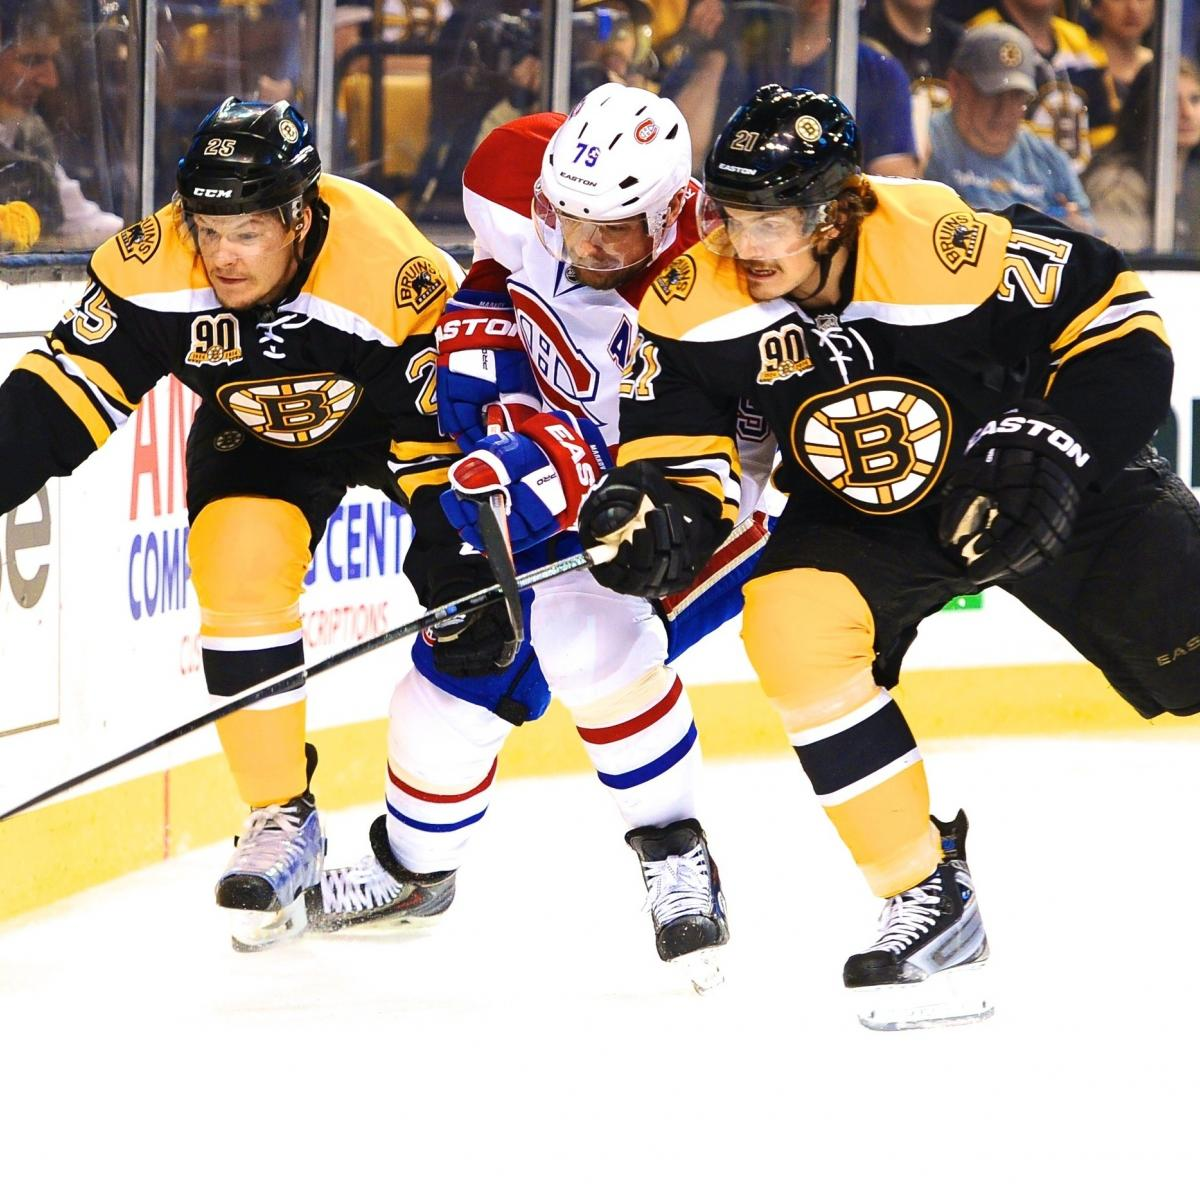 Montreal Canadiens Vs. Boston Bruins Game 5: Live Score